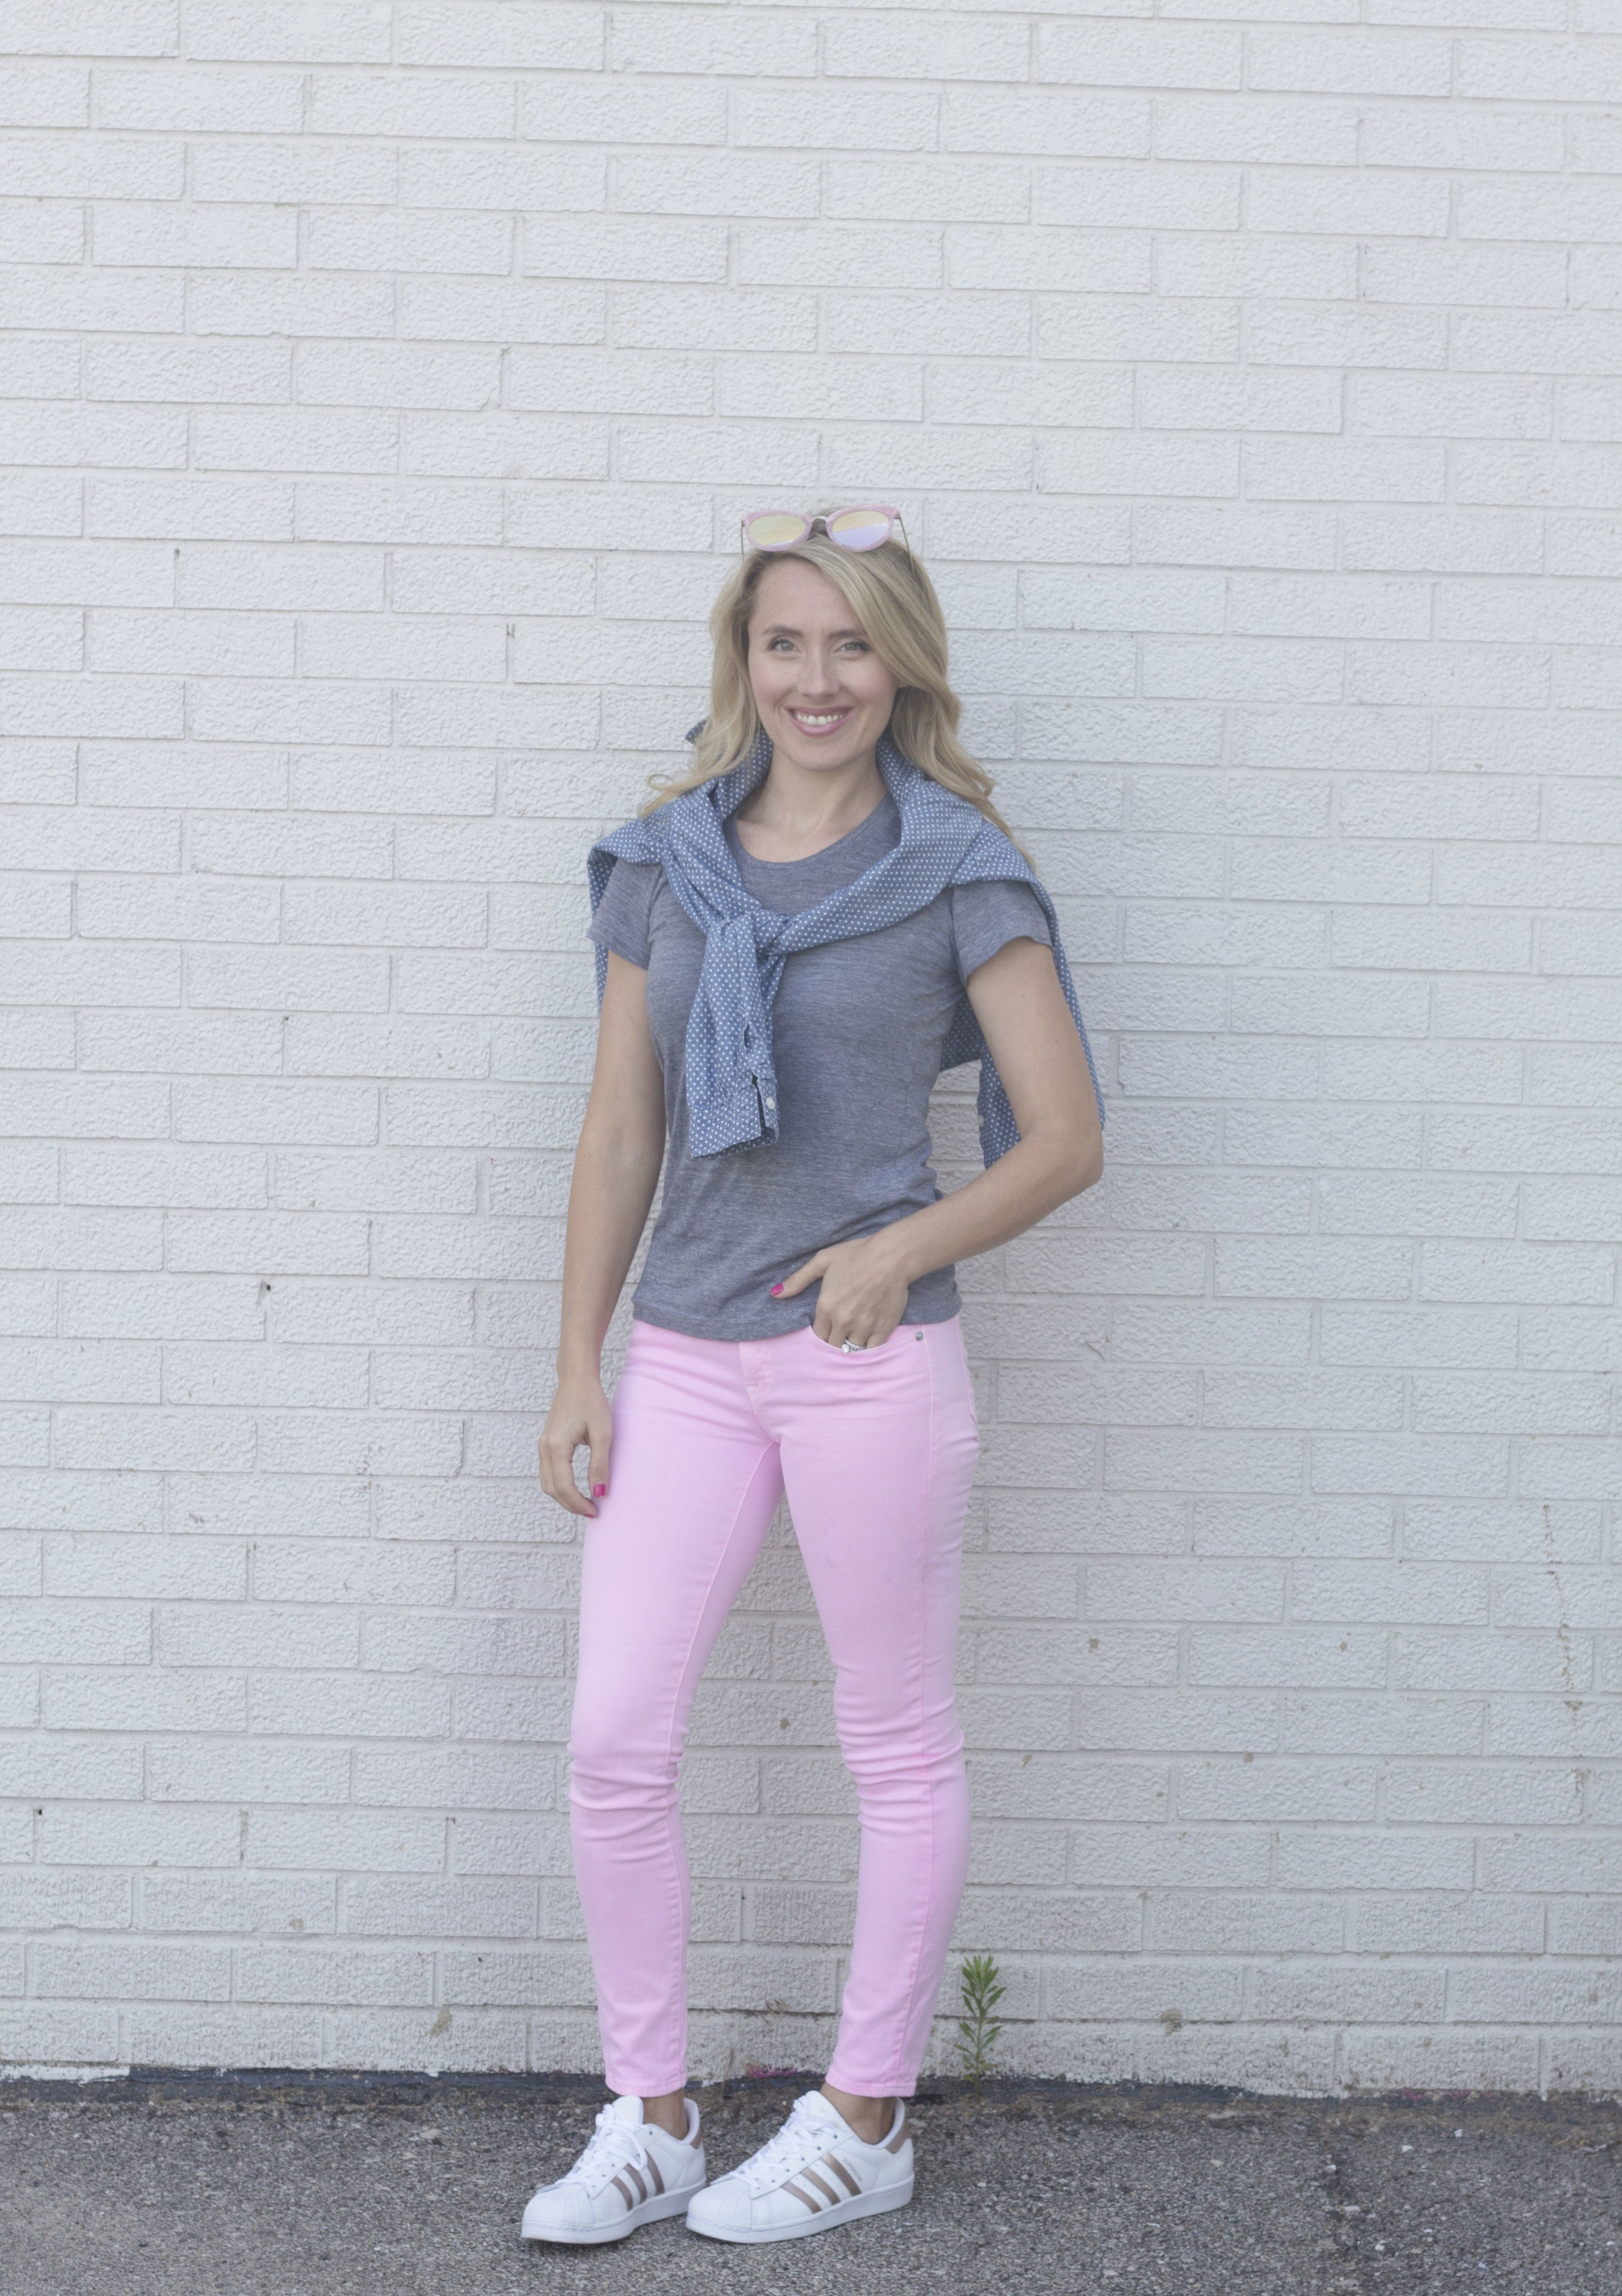 Sporty Pink Jeans J.Crew and Old Navy, So Dressed Up